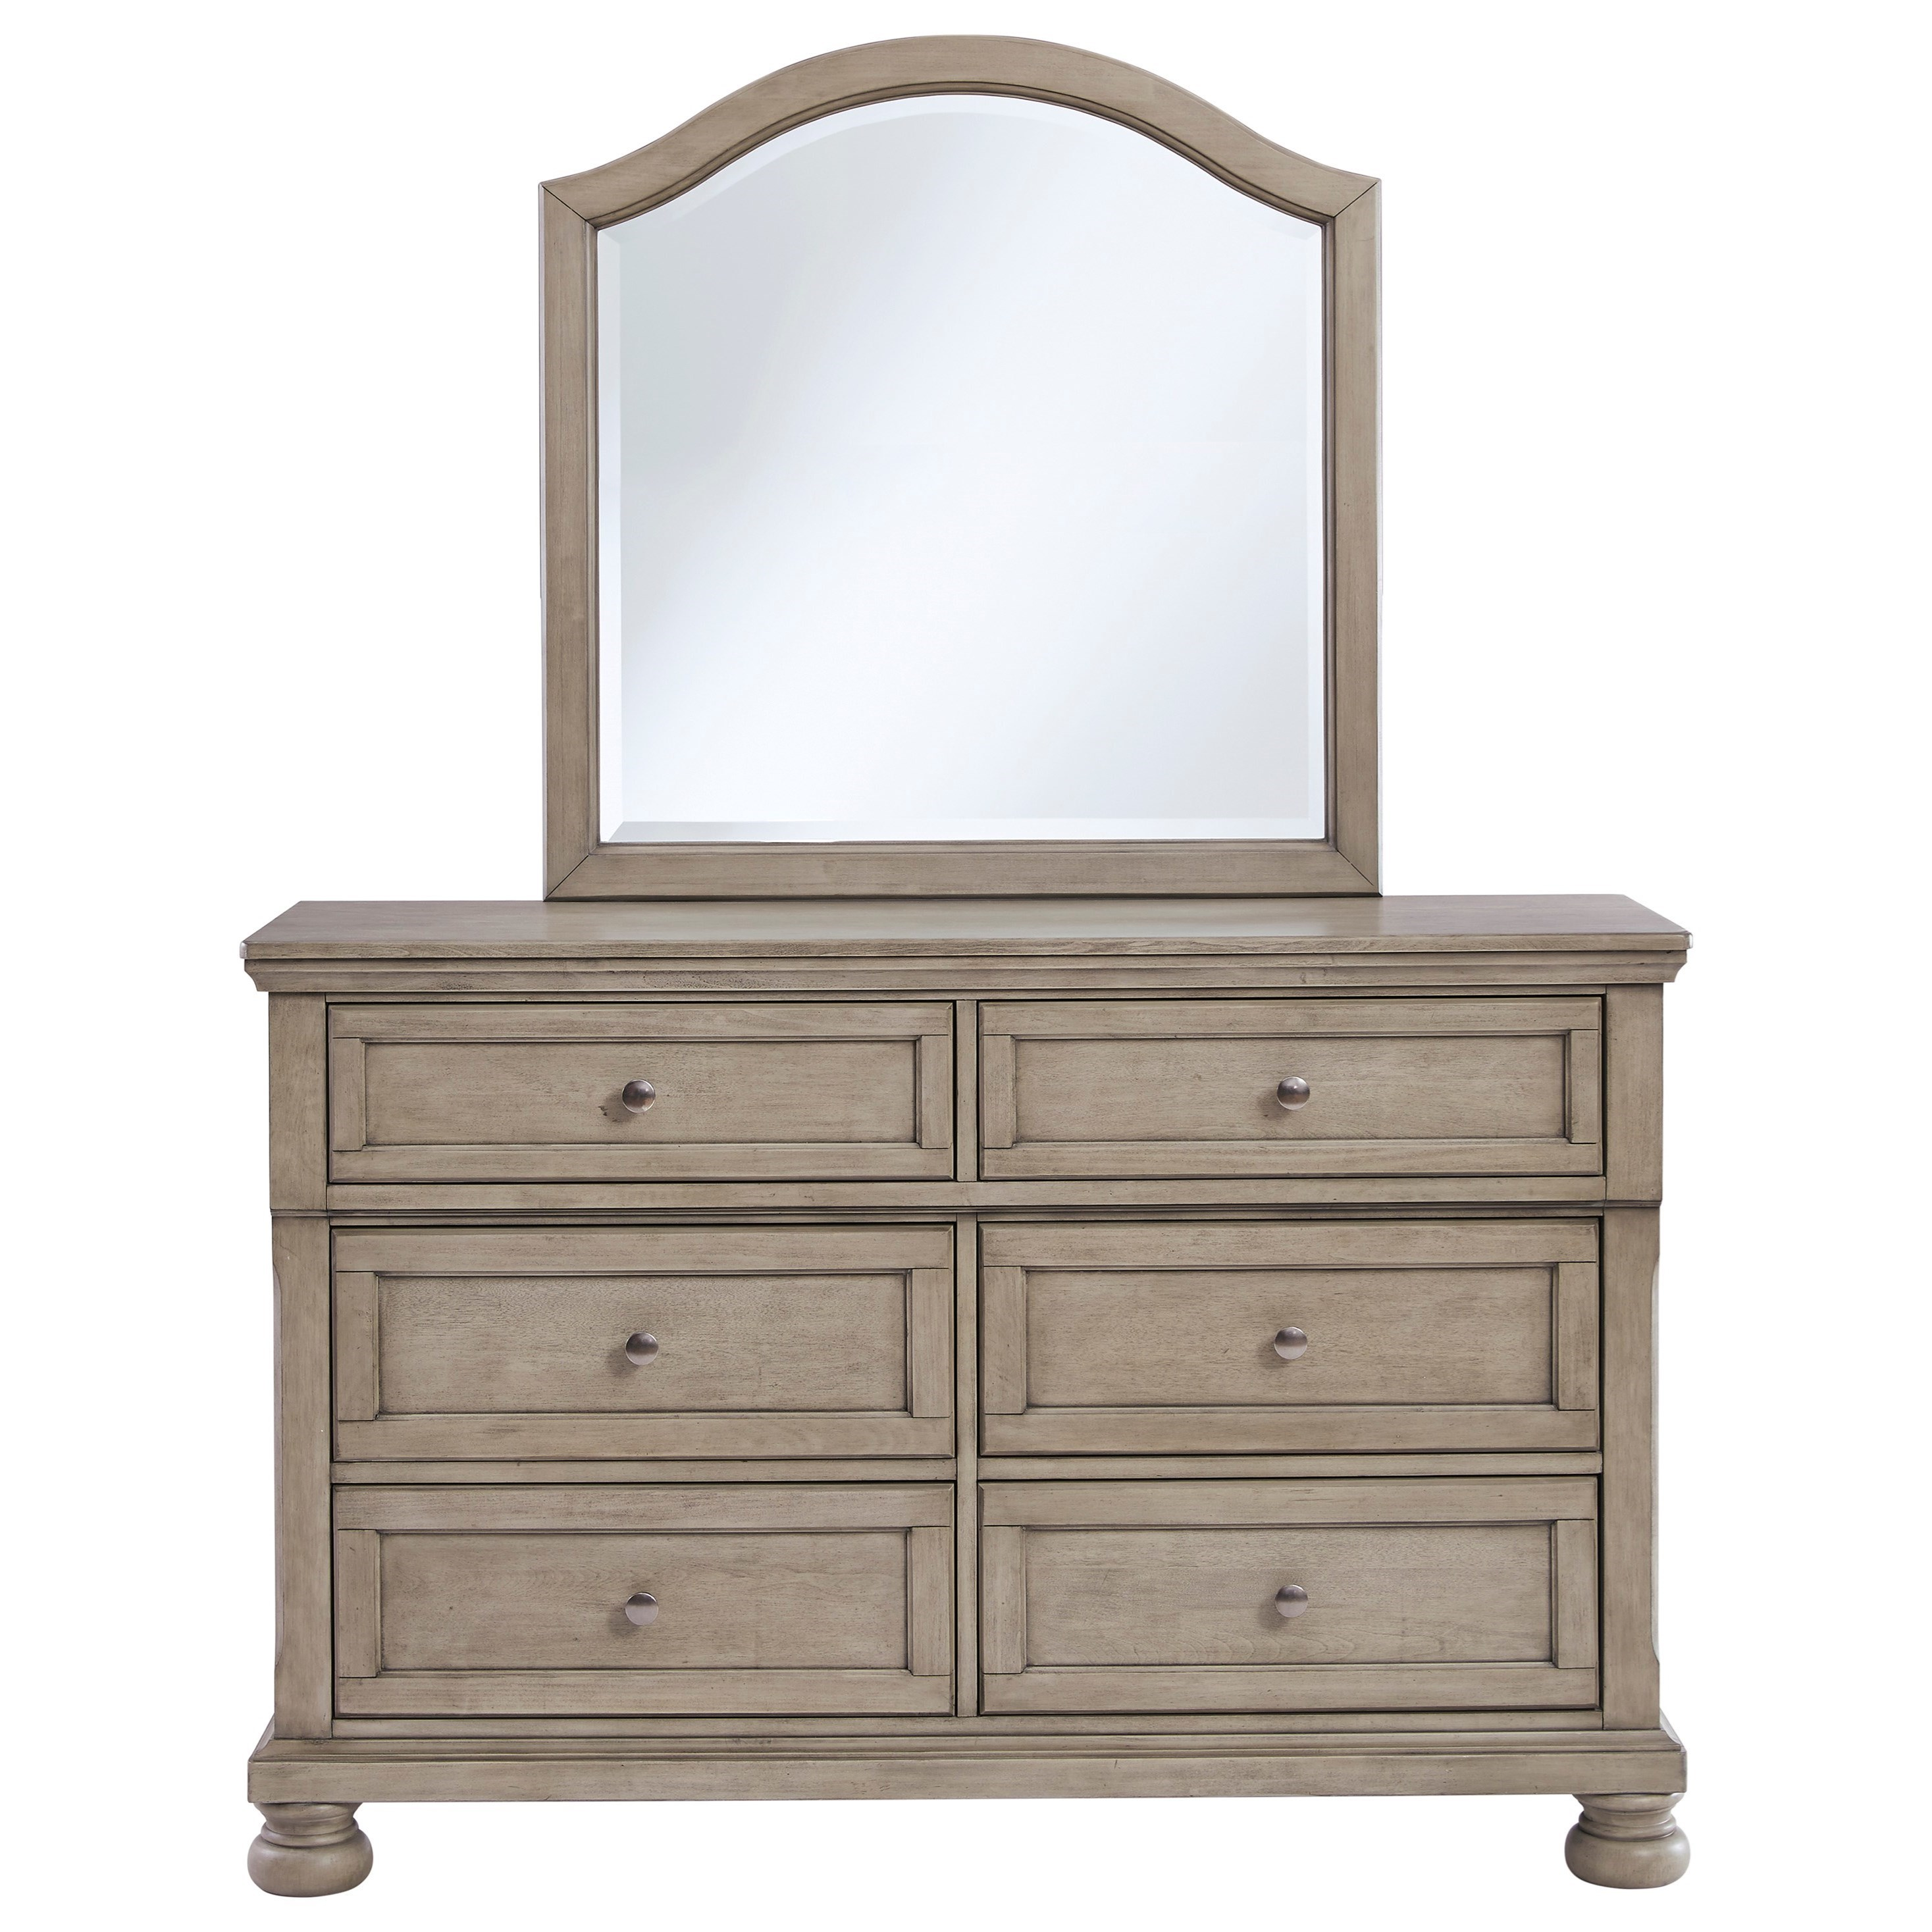 Lettner Dresser & Bedroom Mirror by Signature Design by Ashley at Furniture Barn